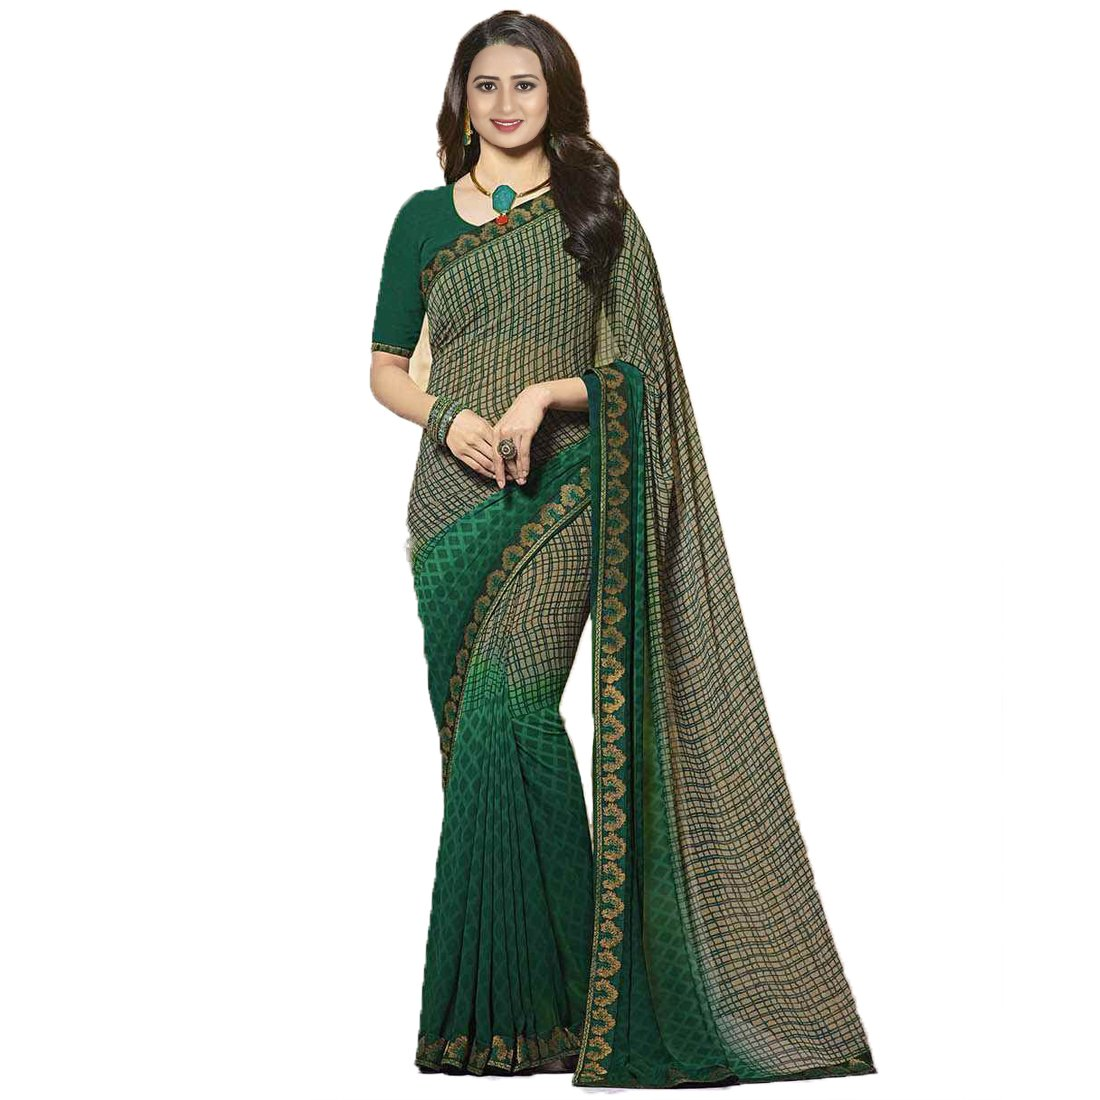 7c753d8a8bd Saree For Women Party Wear Half Sarees Offer Designer Below 500 Rupees  Latest Design Under 300 Combo Art Silk New Collection 2019 In Latest With  Designer ...